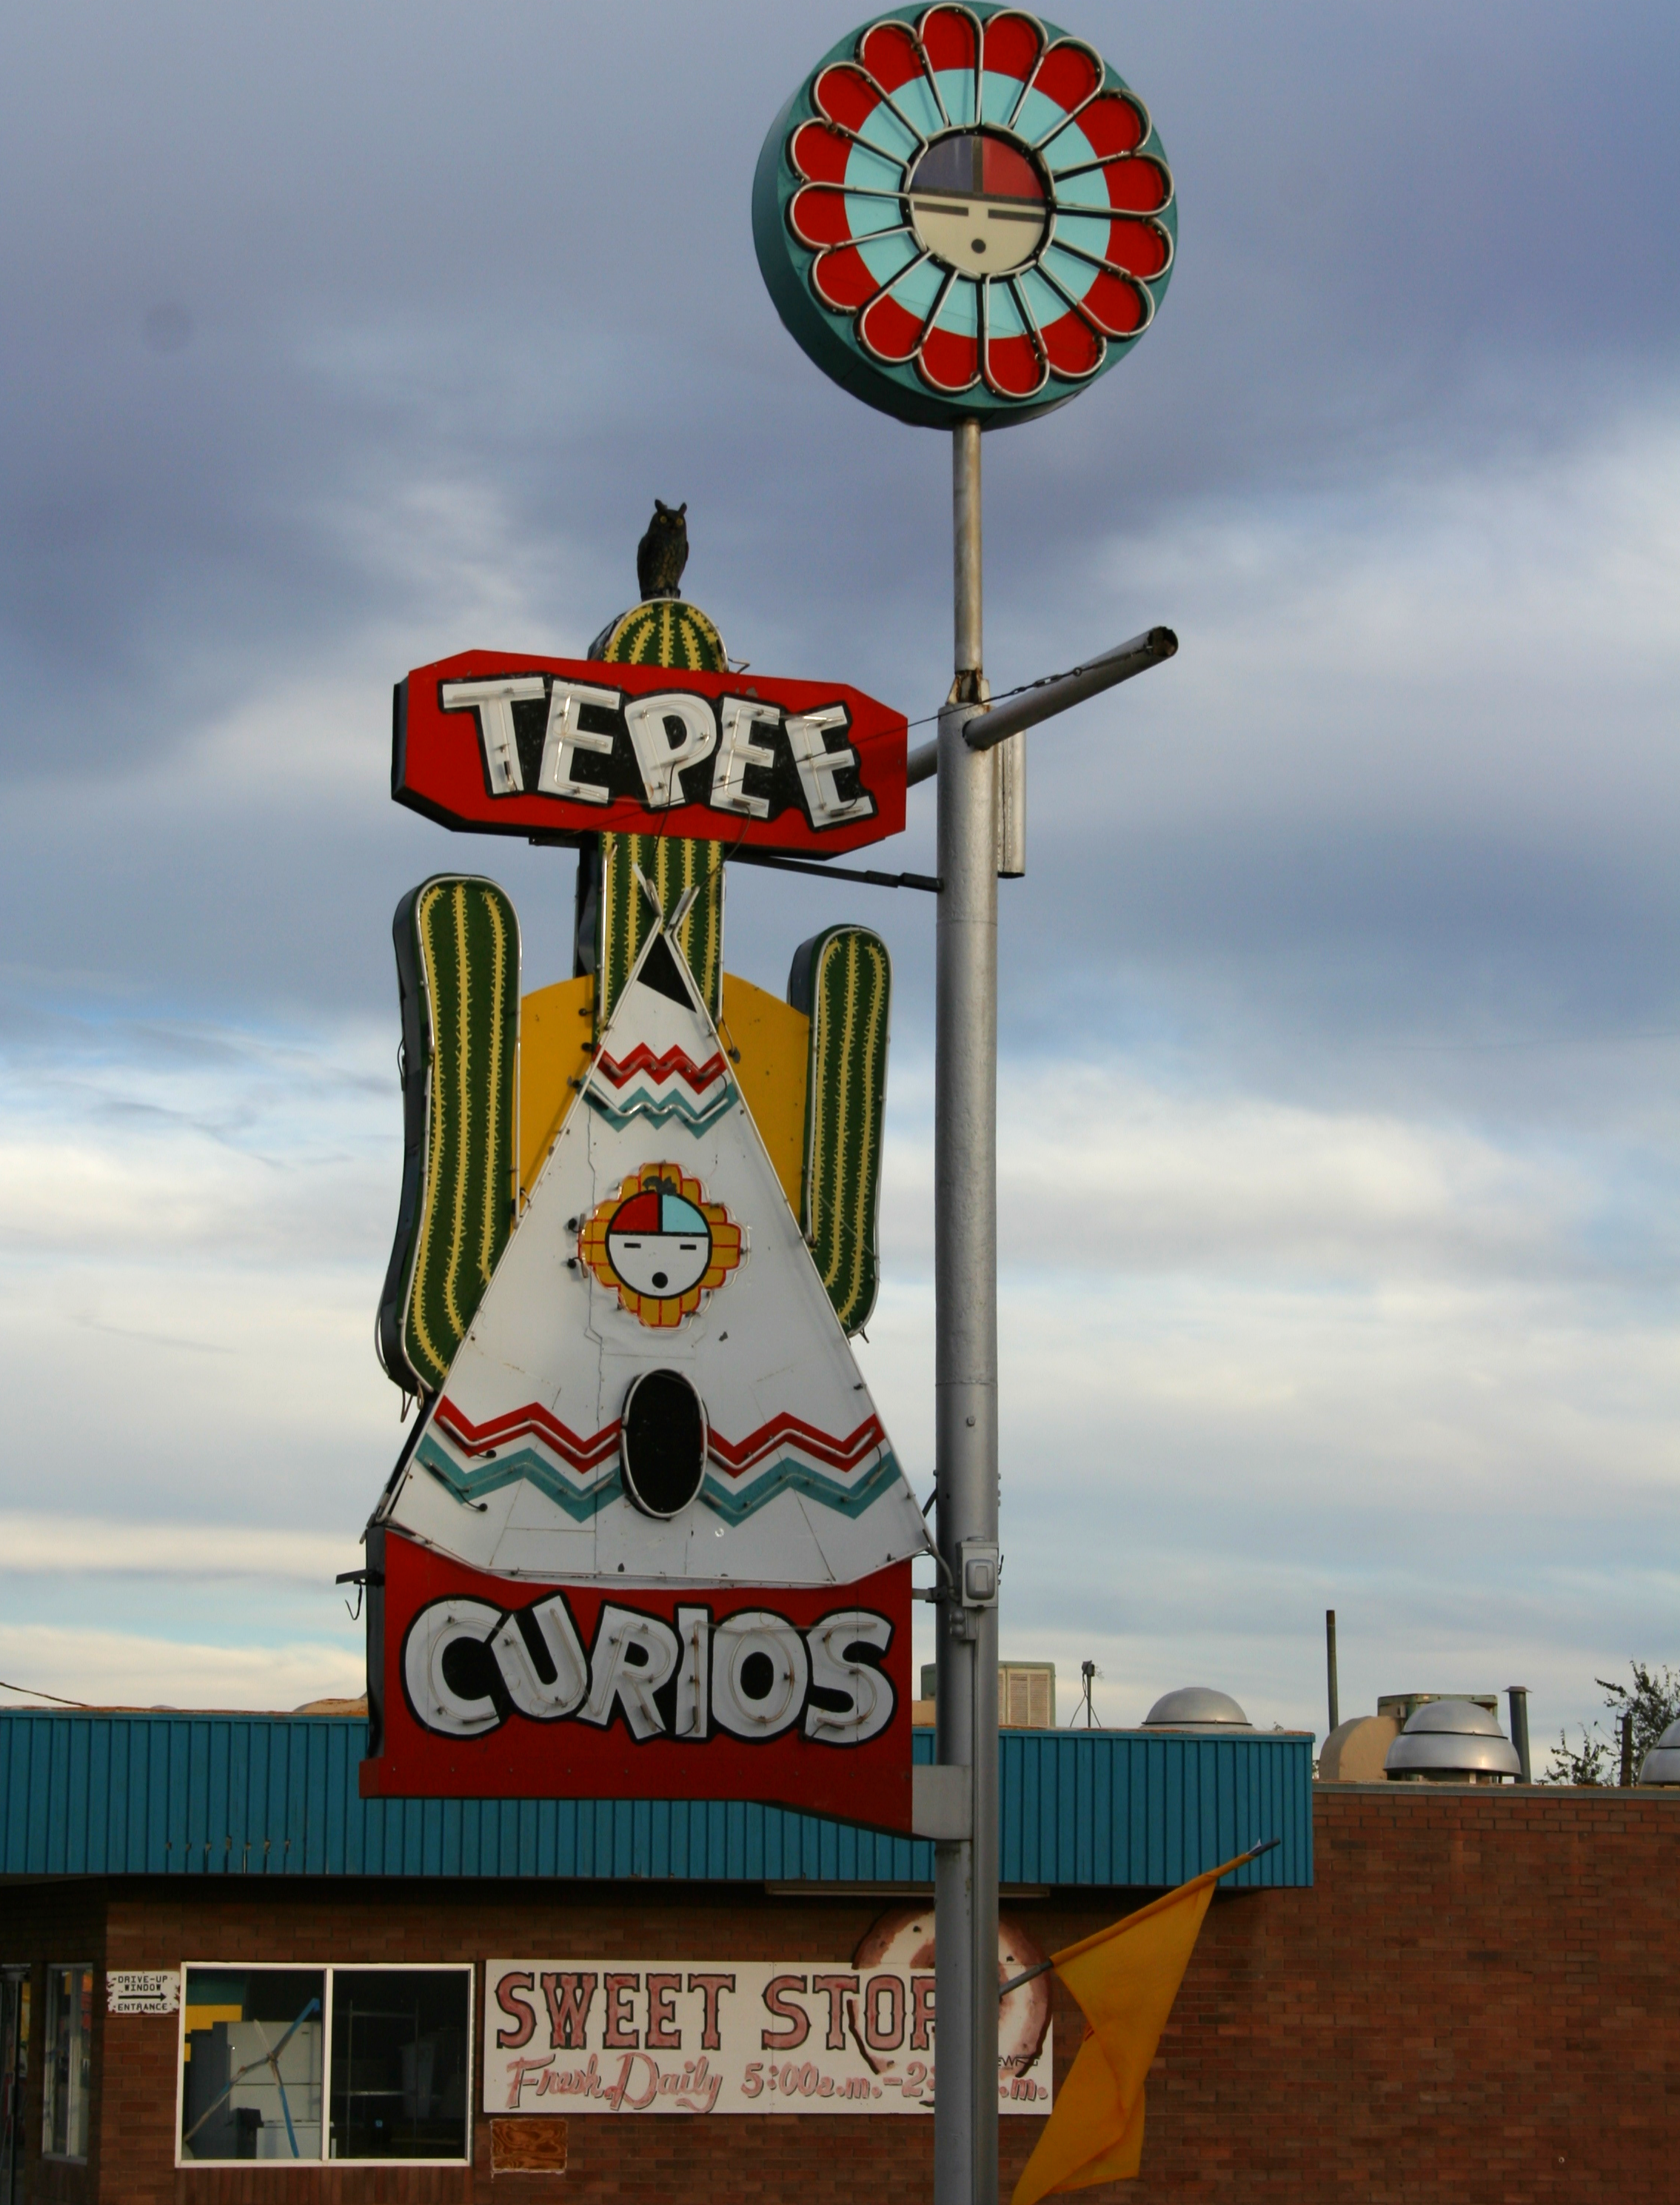 Tepee Curios: Tucumcari, New Mexico, Built in 1944, Tepee Curios was originally a Gulf gas station thAT Carried souvenirs and groceries.